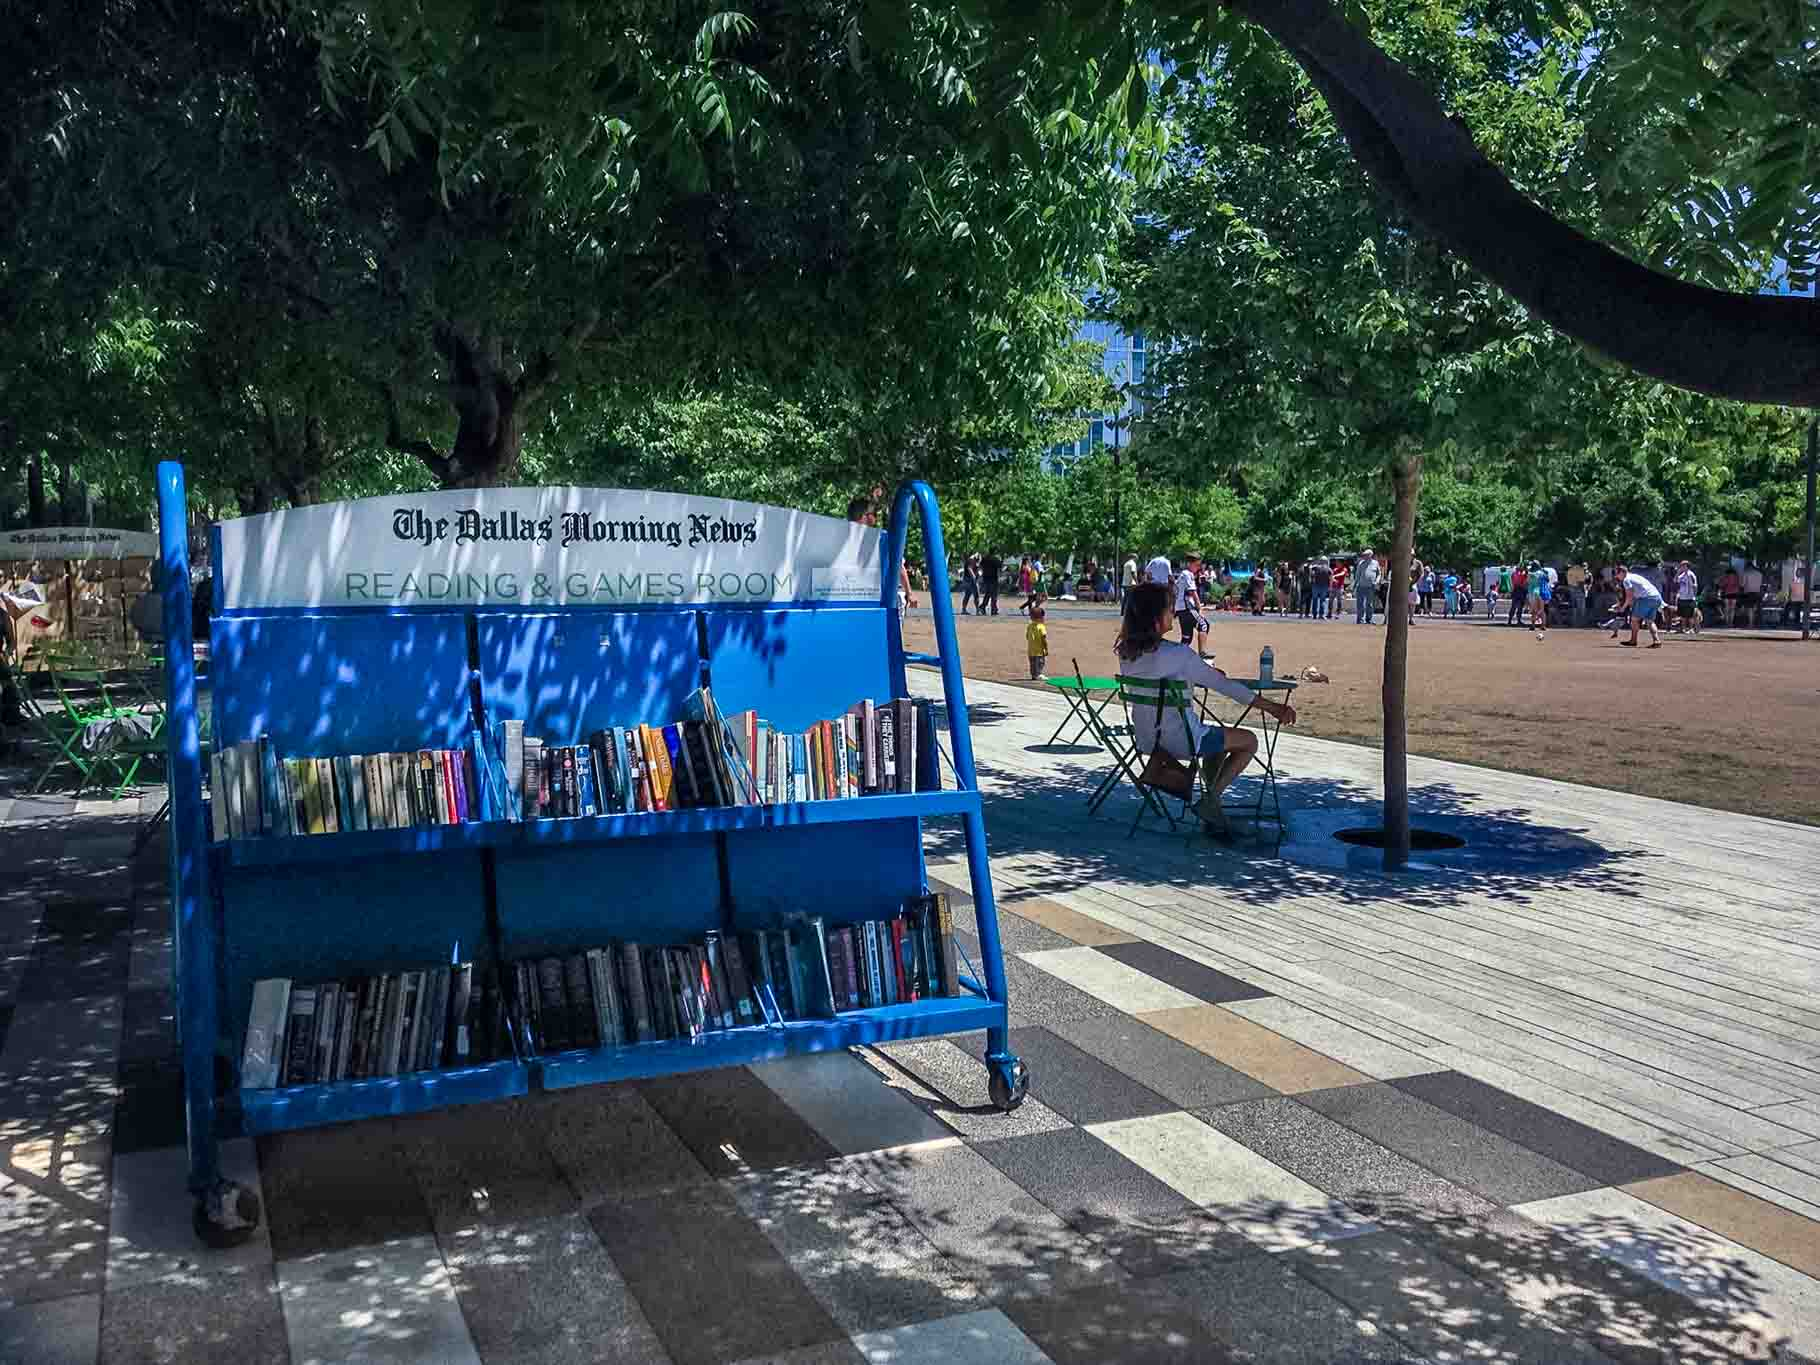 Reading area and books on shelf at Klyde Warren Park